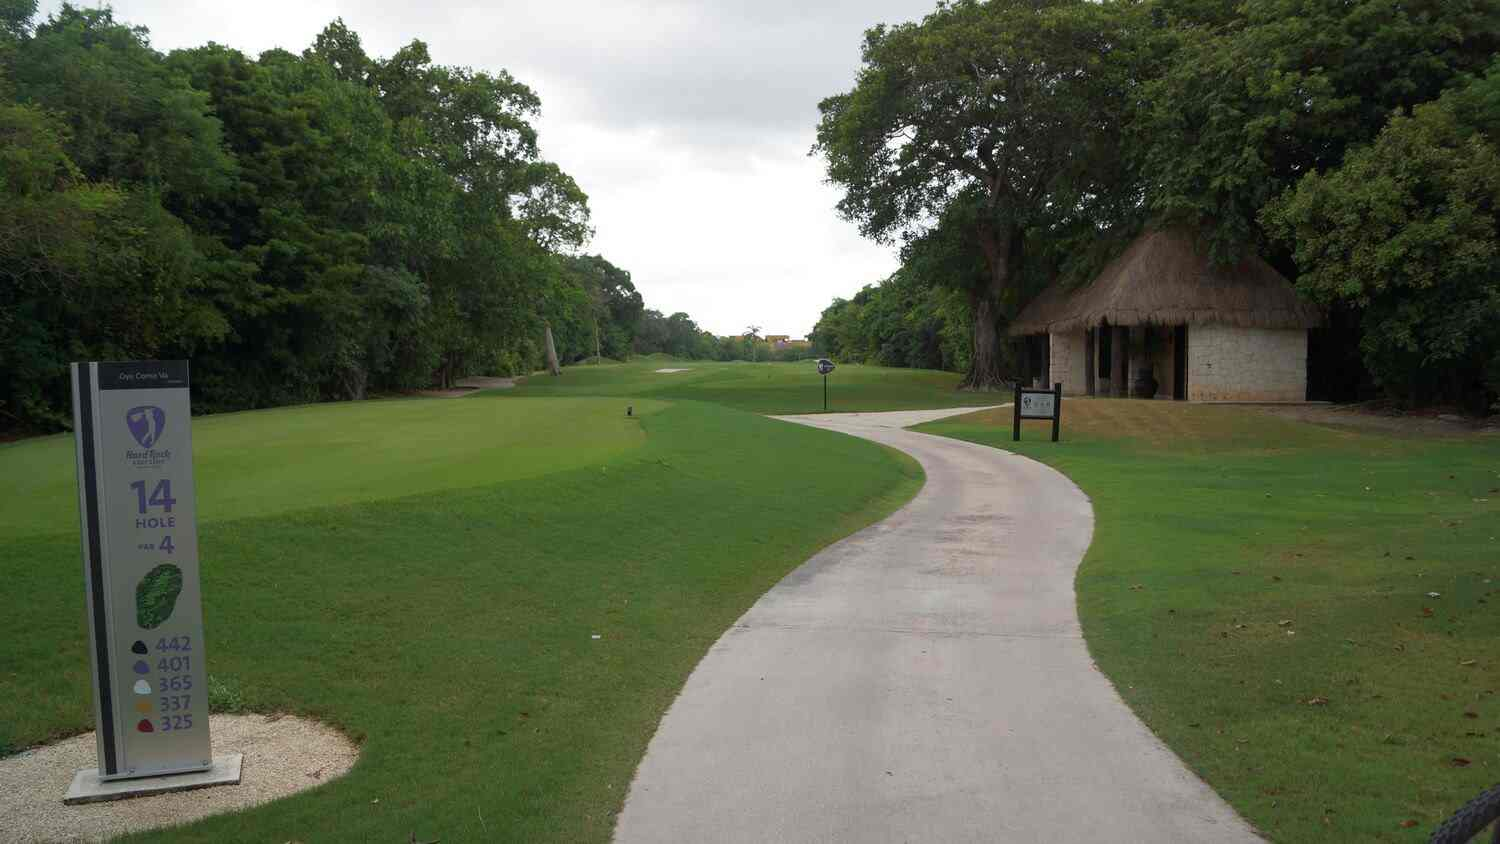 A walking path running along a the Hard Rock golf course in Playacar.